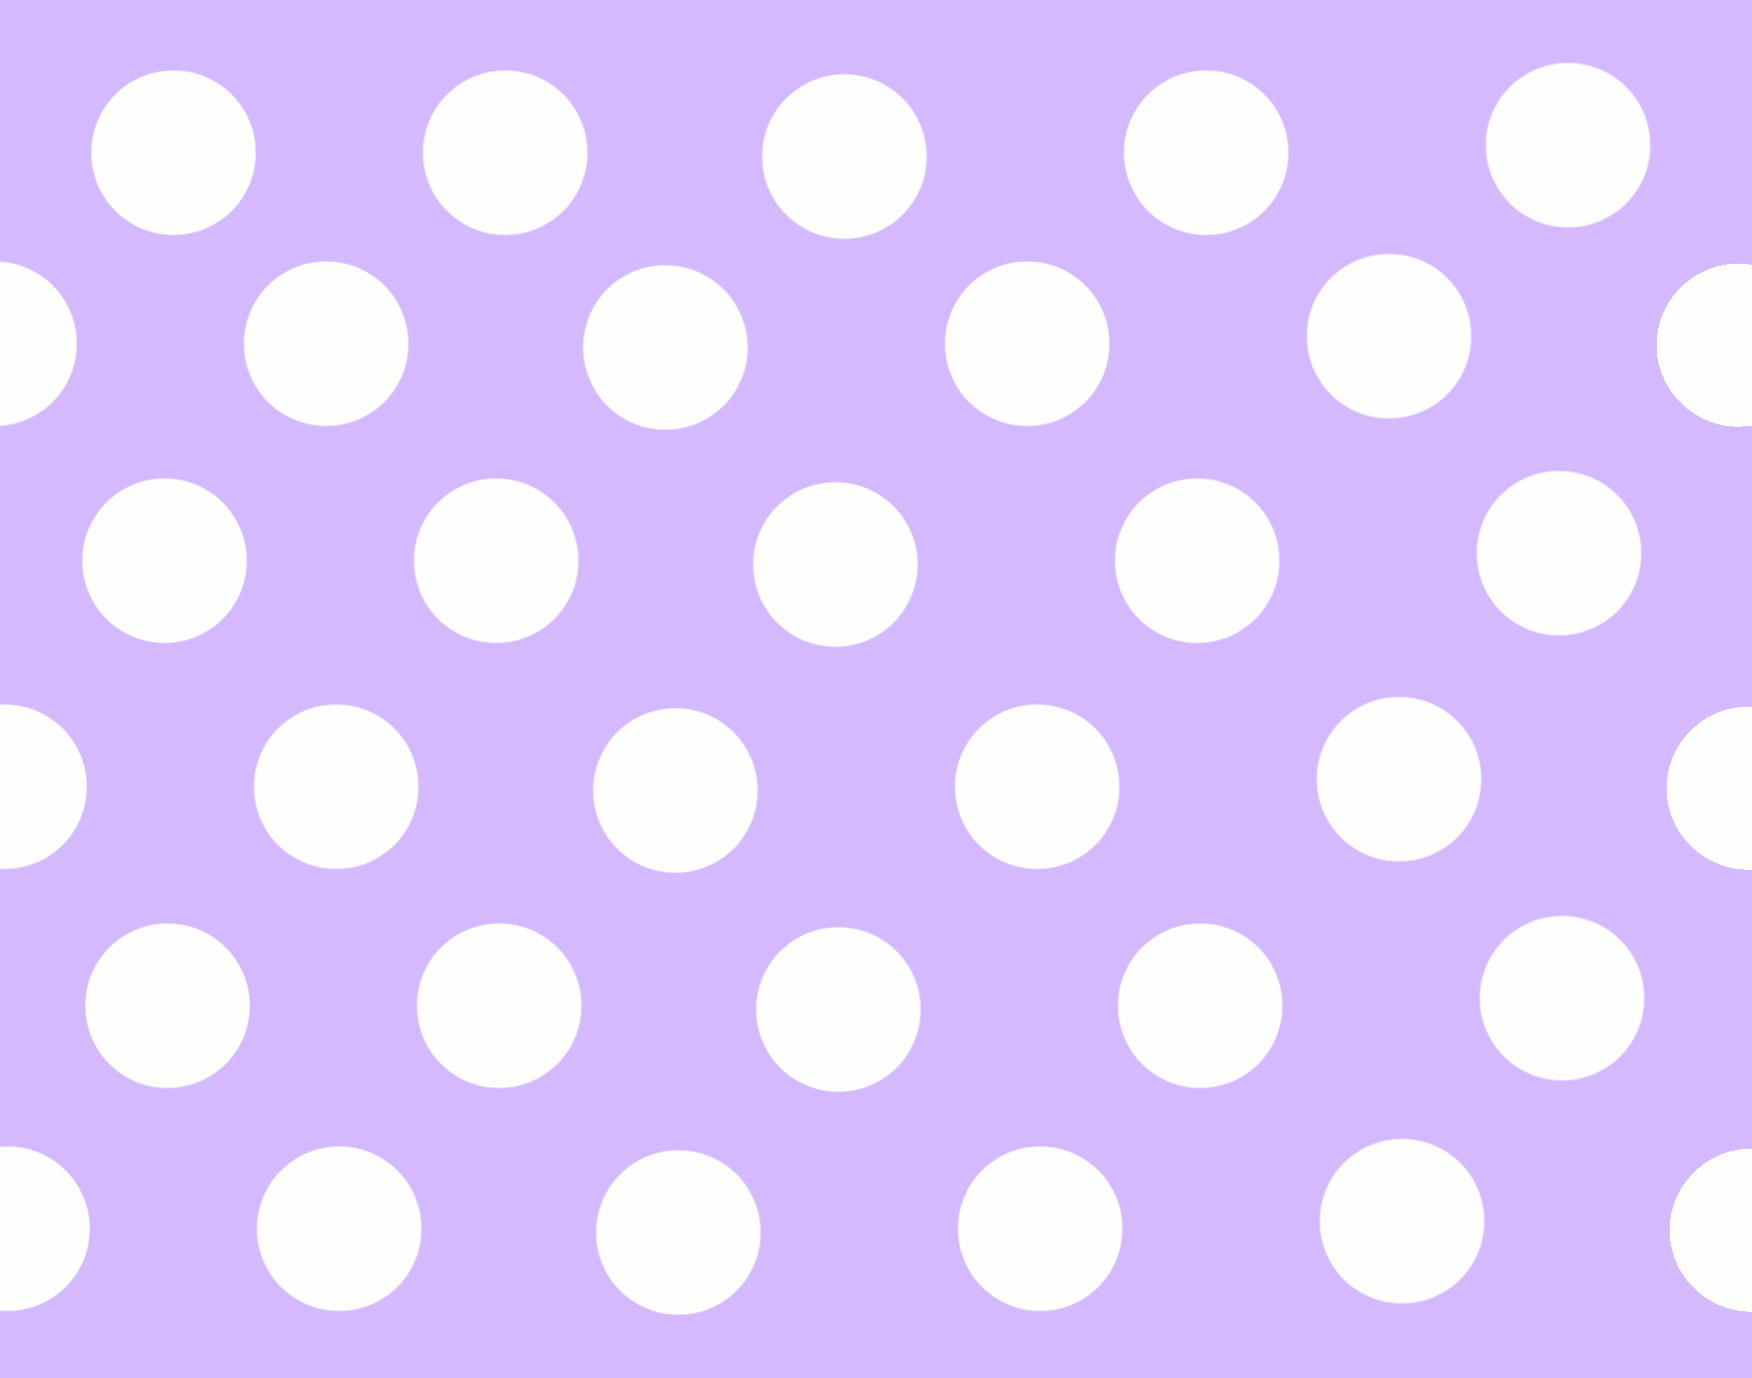 White Polka Dot Wallpaper Wallpapersafari